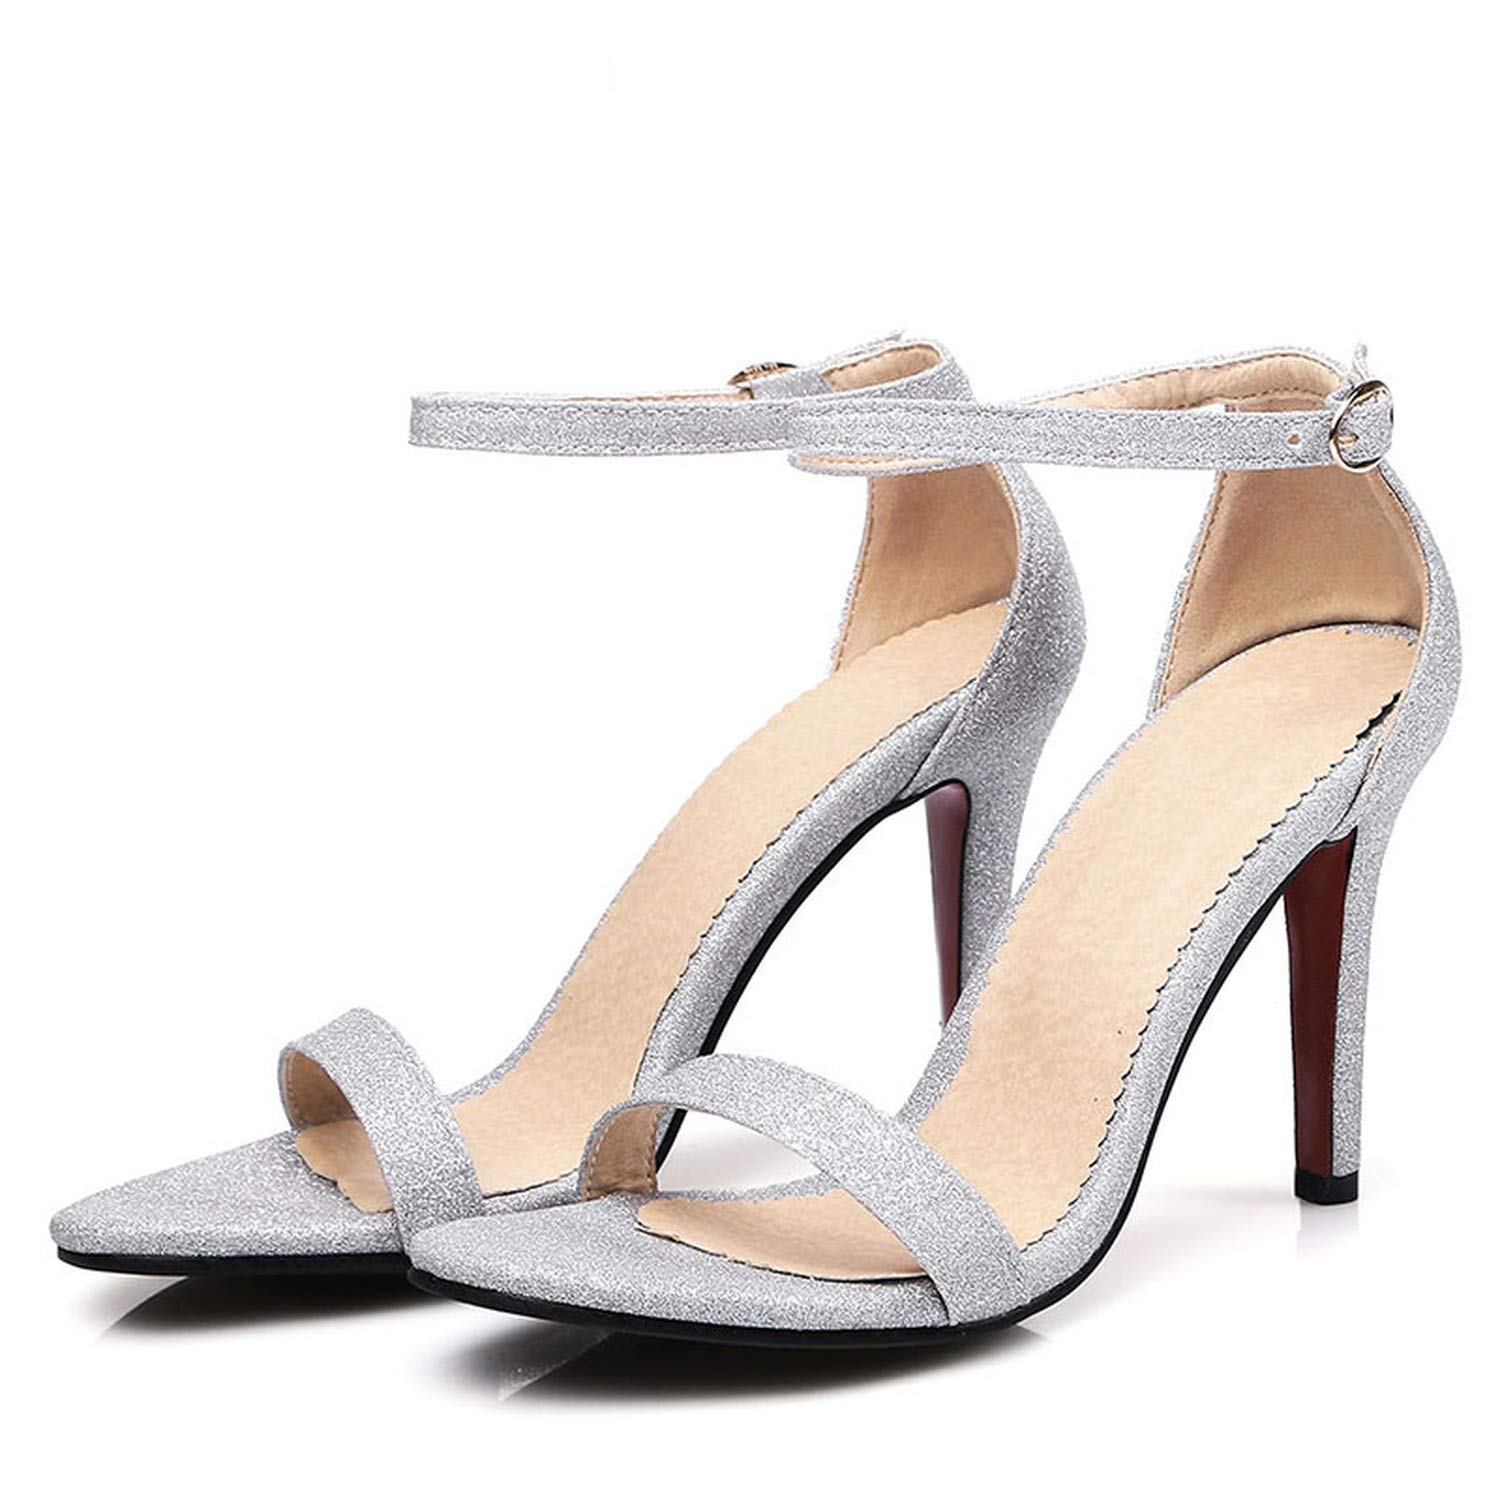 Silver Summer Ankle Strap Sandals shoes Ladies Party Nightclub Sexy Open Toe shoes